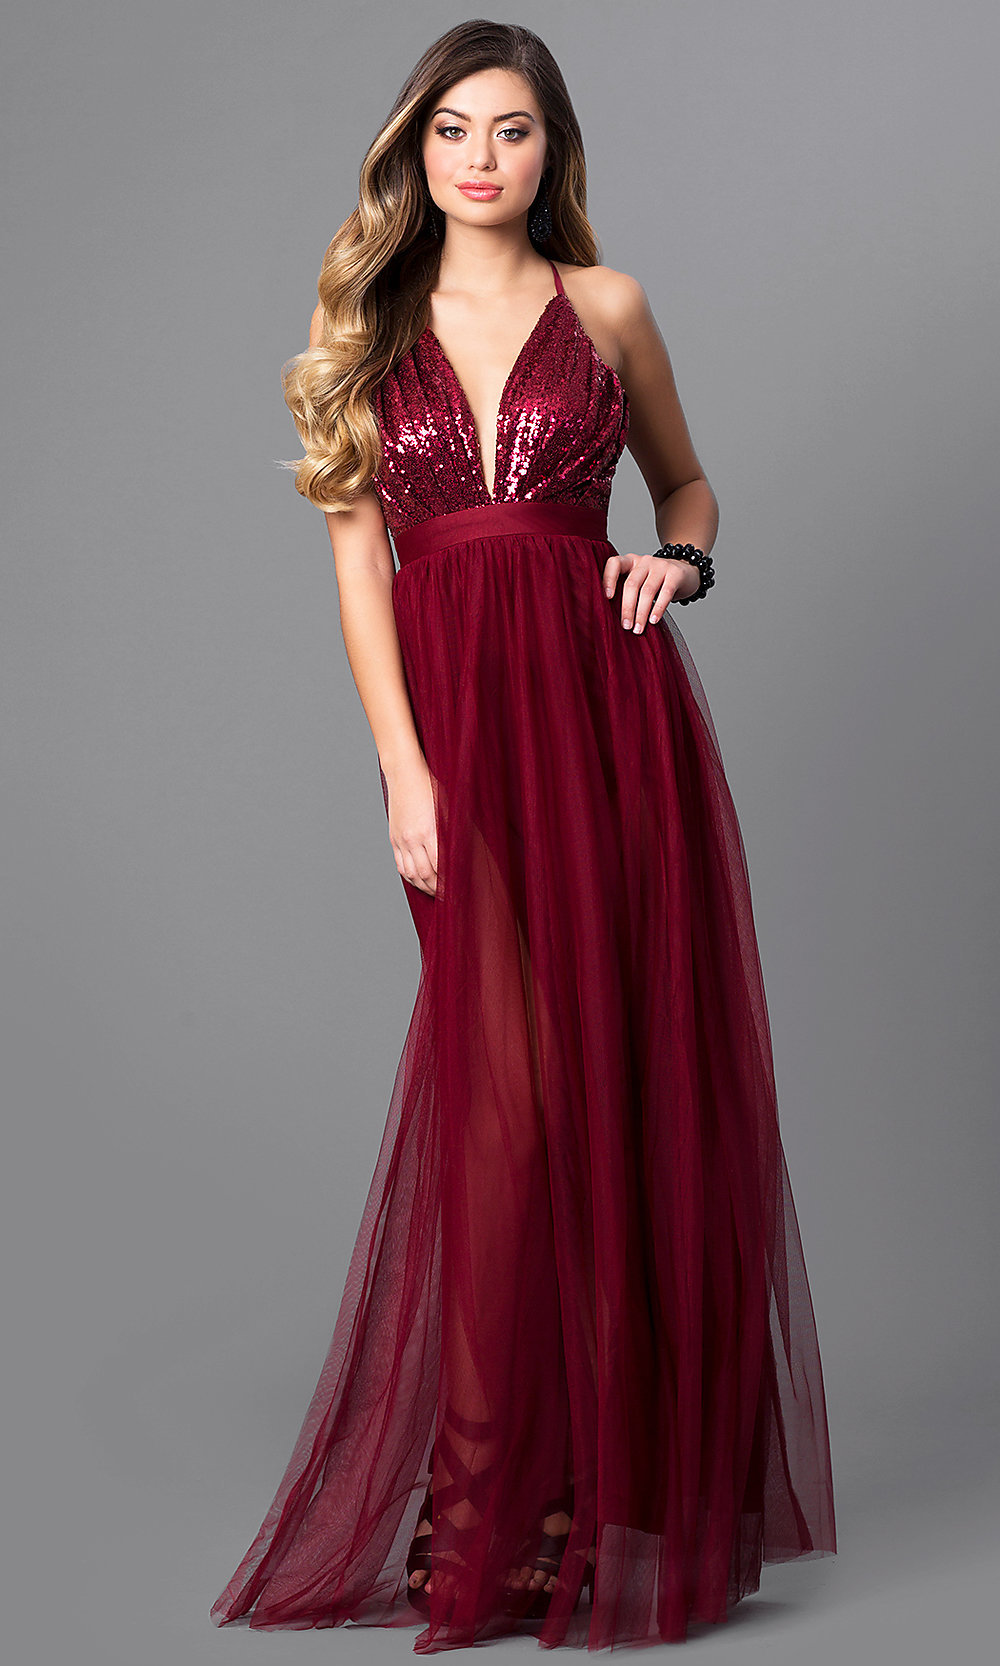 Prom dress shopping is about trying out plenty of options, and resultsmanual.gq offers six thousand styles to choose from, in styles ranging from short and flirty to floor .